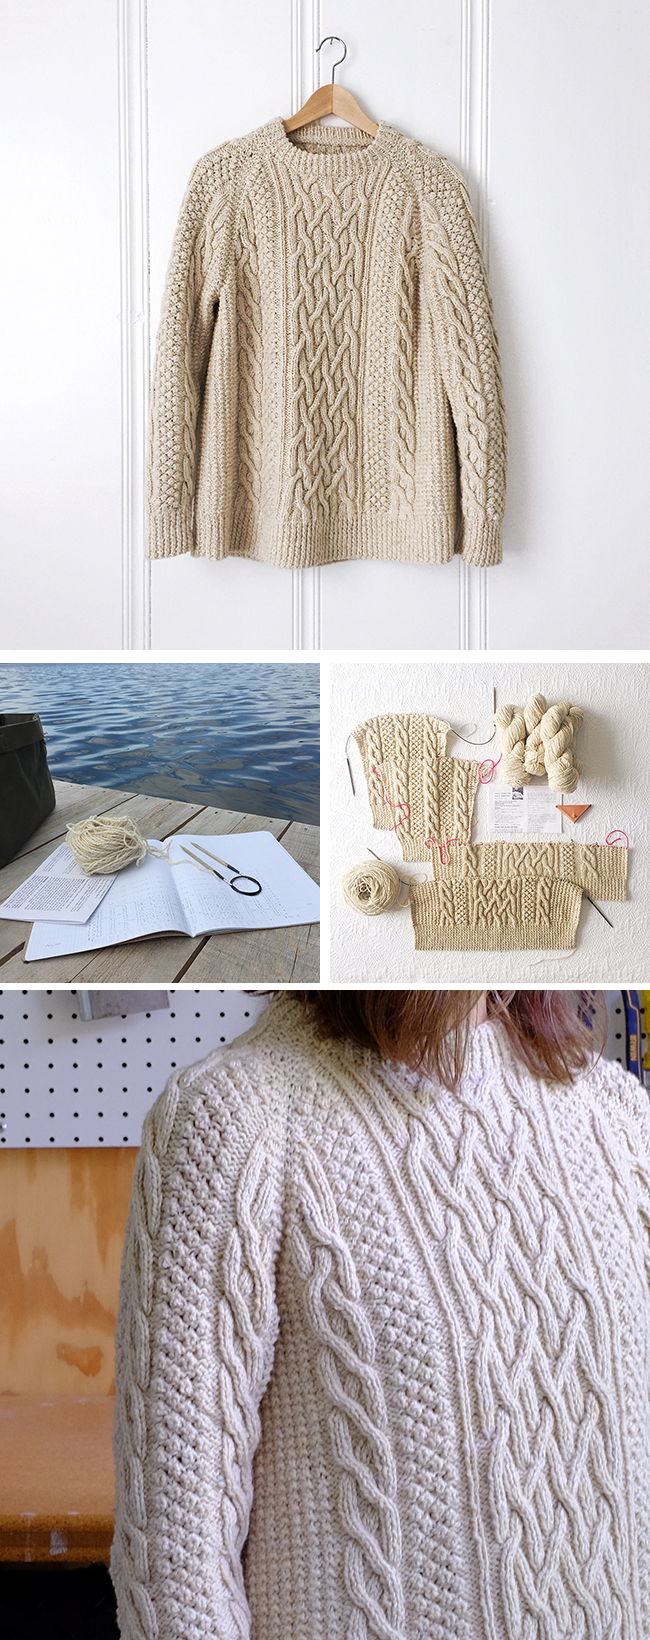 Finished: The fisherman sweater (SoB-3)